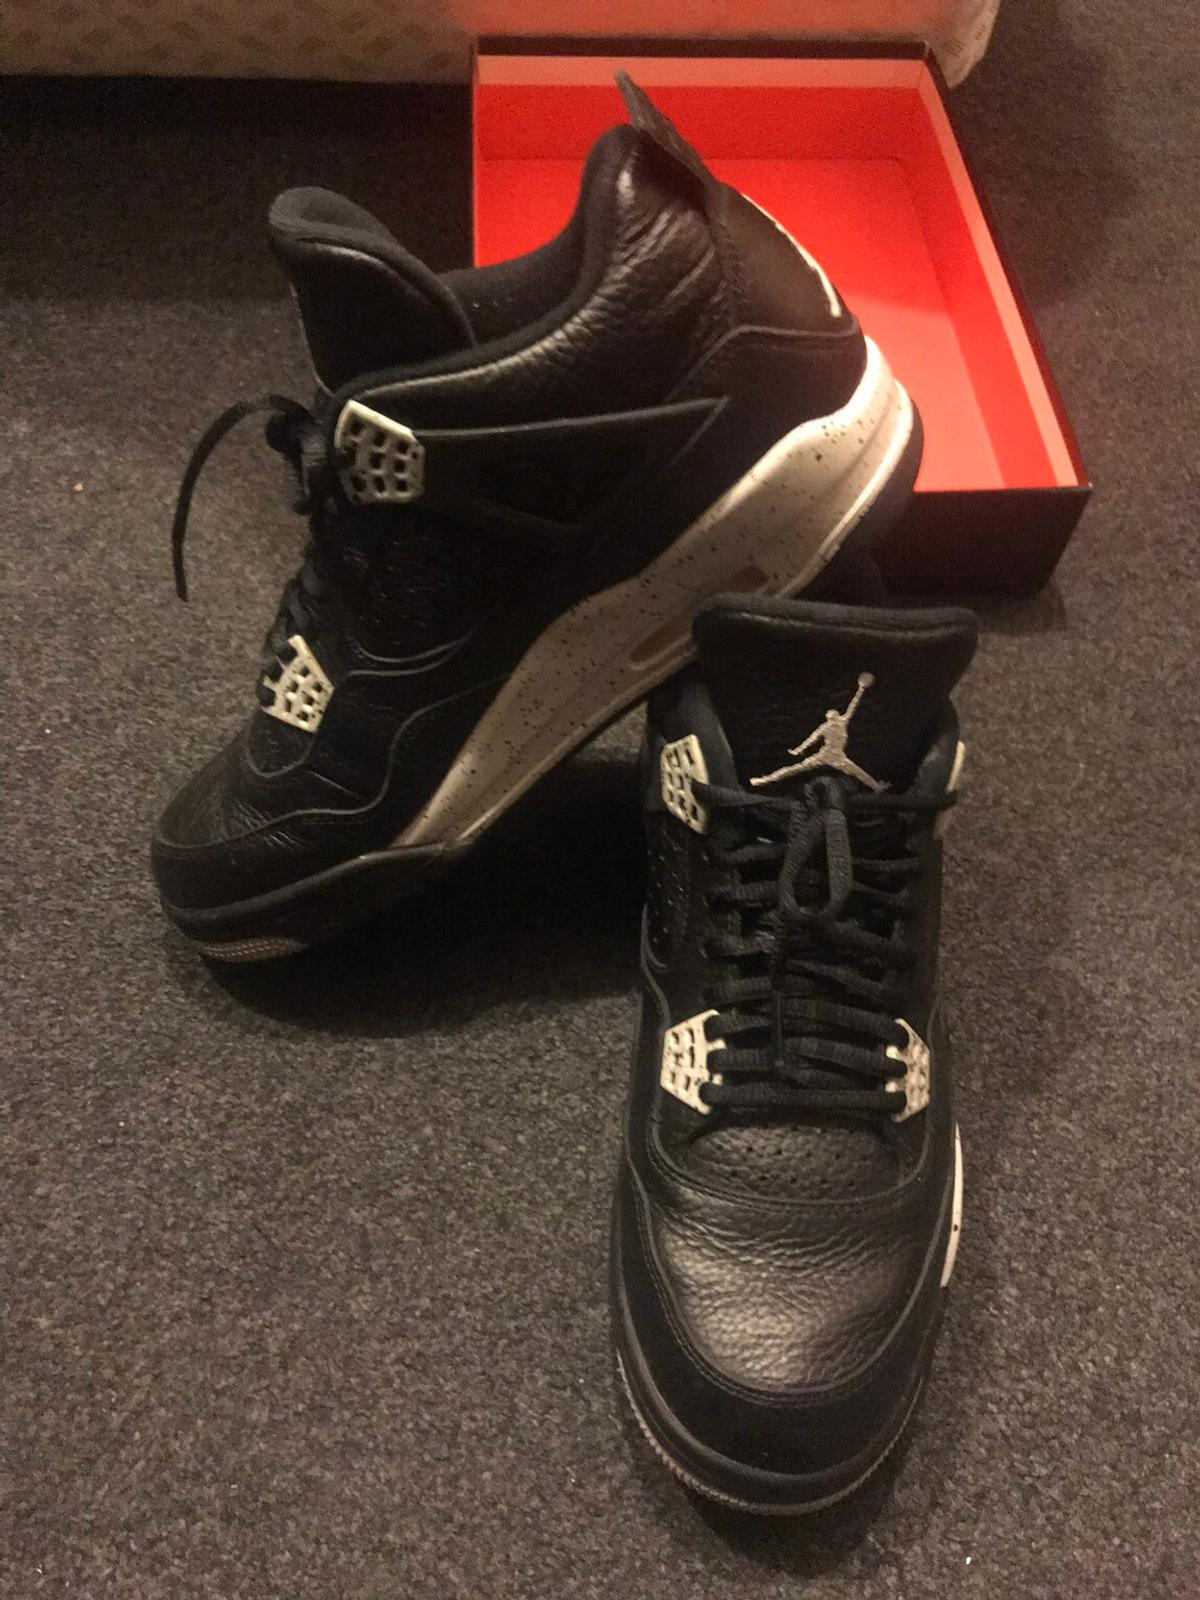 Jordan 4s in B10 Birmingham for £175.00 for sale - Shpock